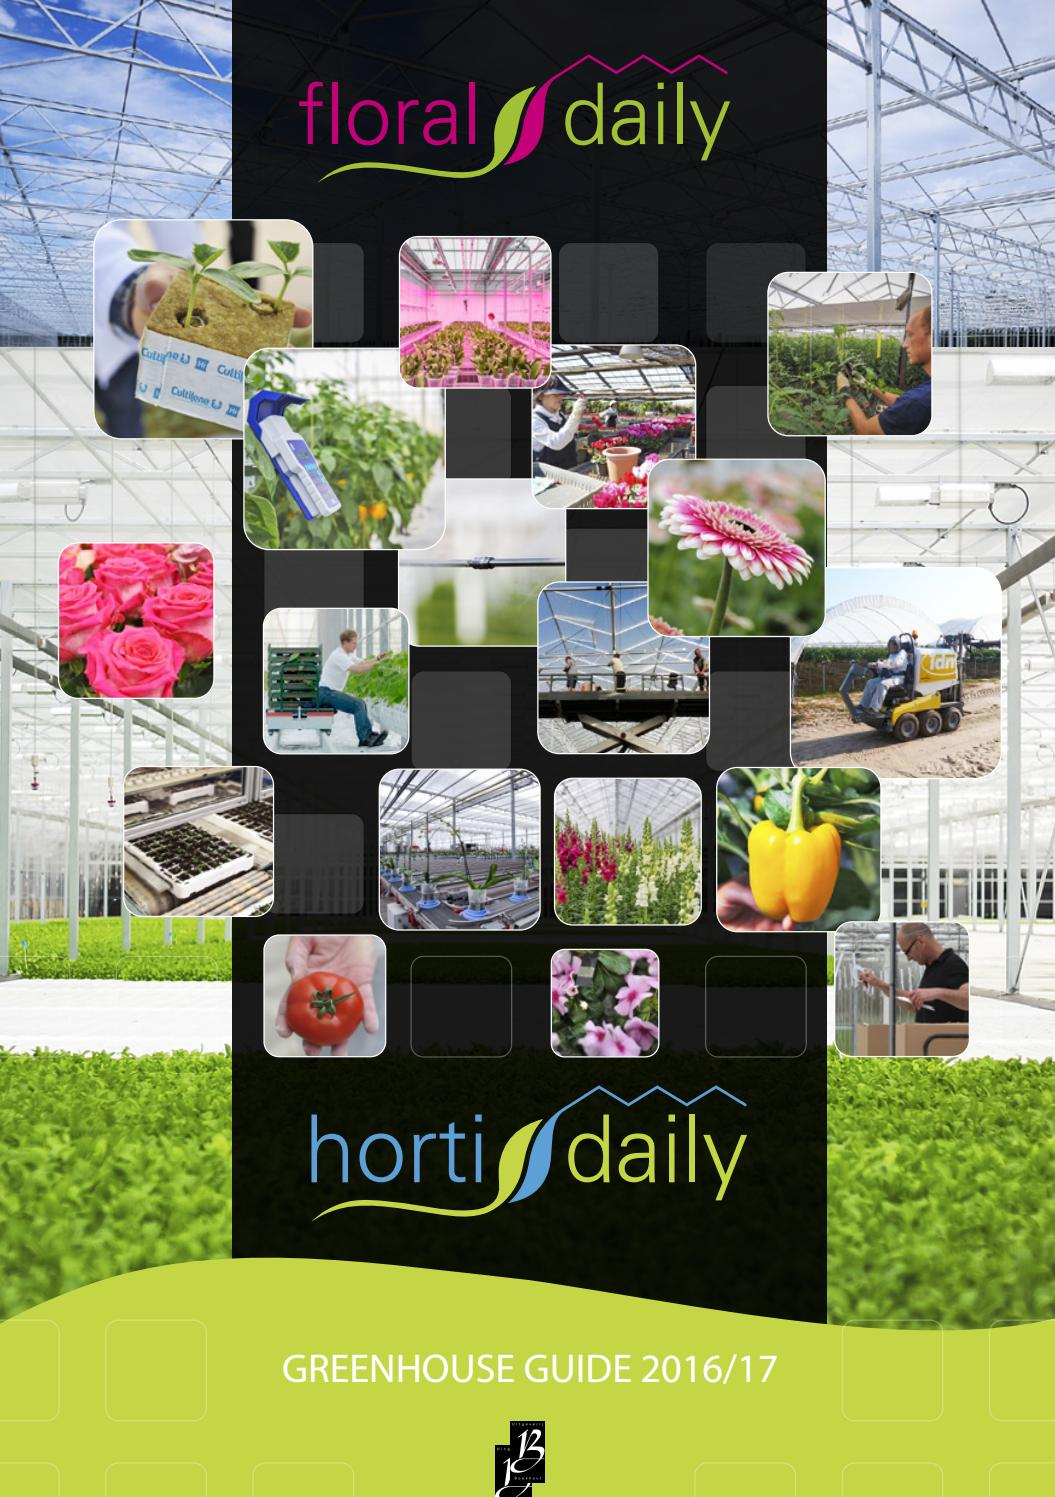 Greenhouse Guide 2016 17 By Agf Vormgeving Issuu